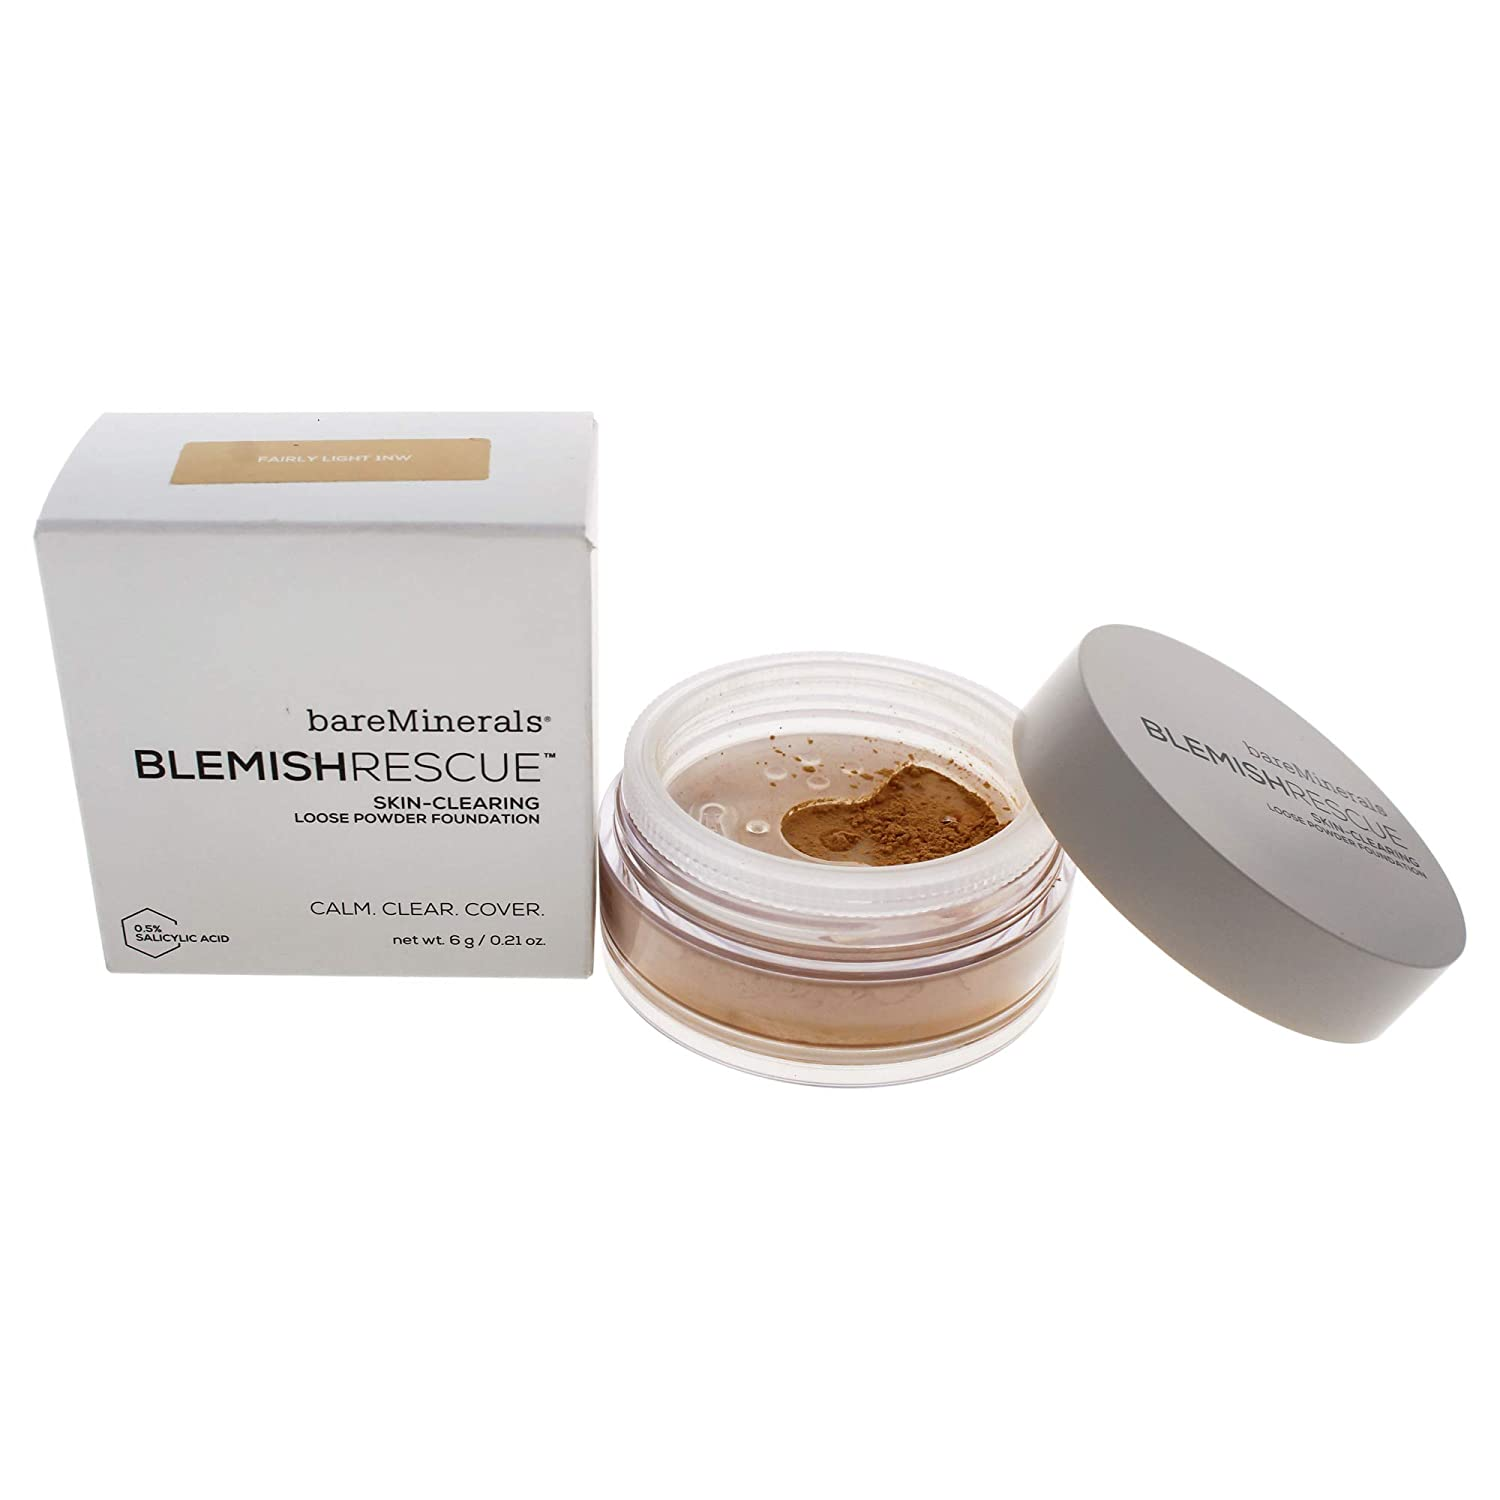 Bare Escentuals Blemish Rescue Skin-clearing Loose Powder Foundation for Women, 1nw Fairly Light, 0.21 Oz